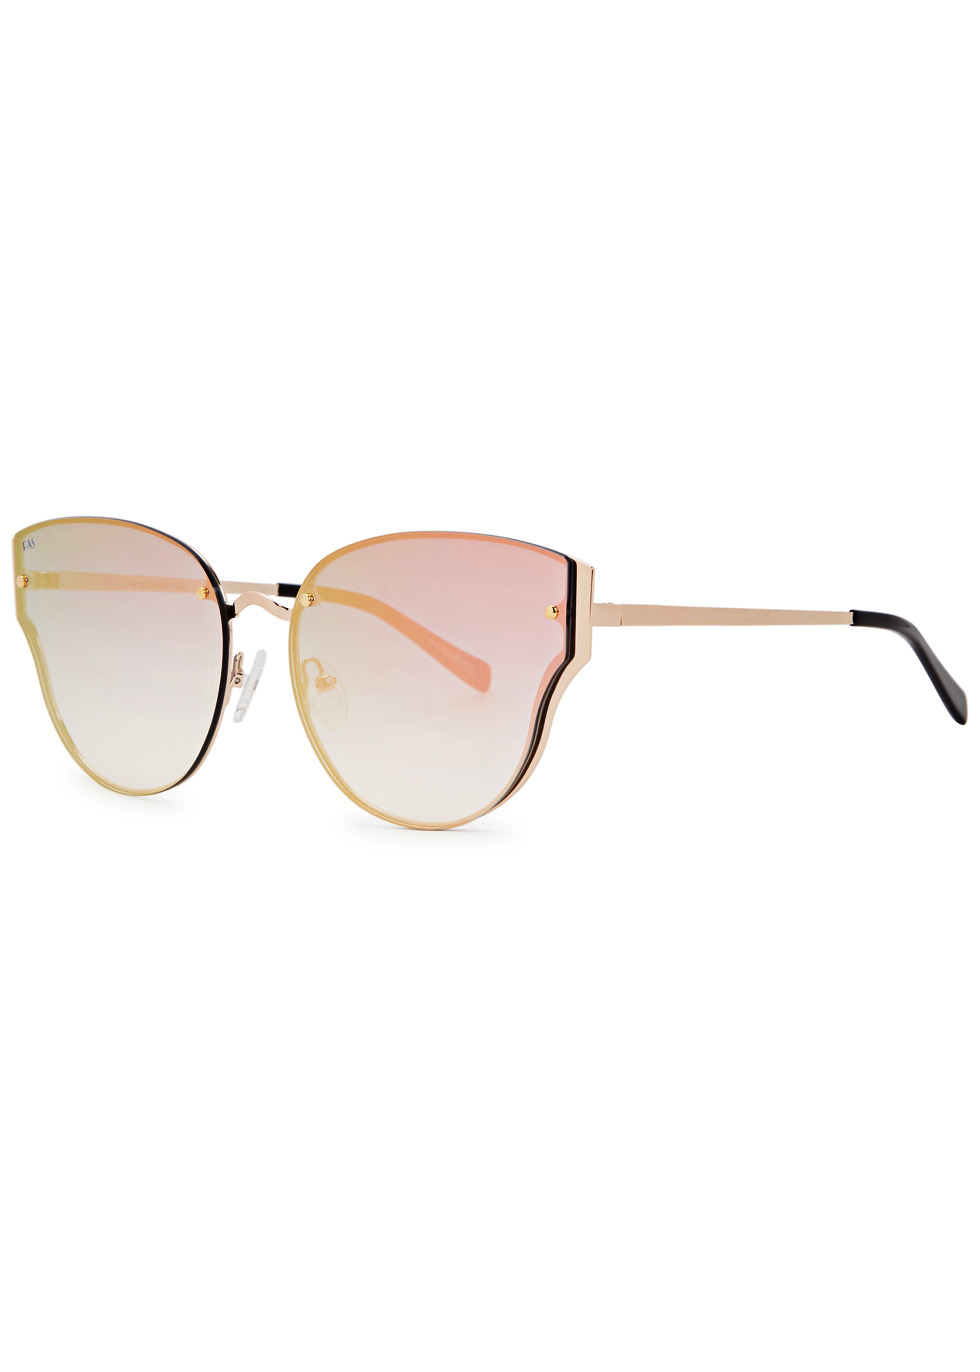 Honeytrap rose gold cat-eye sunglasses - FOR ART'S SAKE